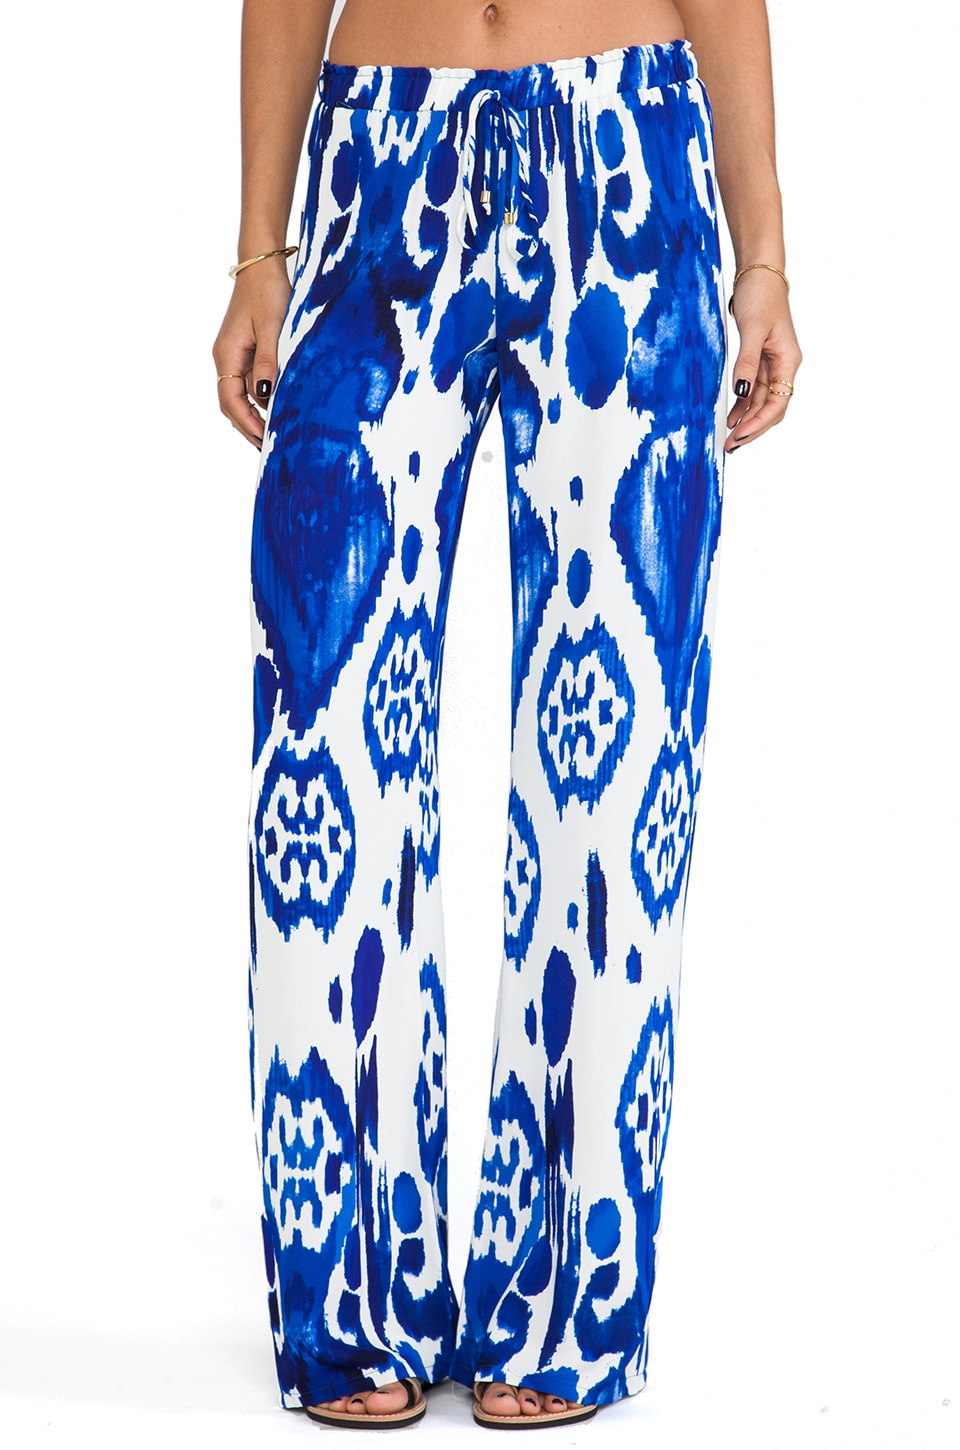 Karina Grimaldi Maui Wide Leg Pants in Calico